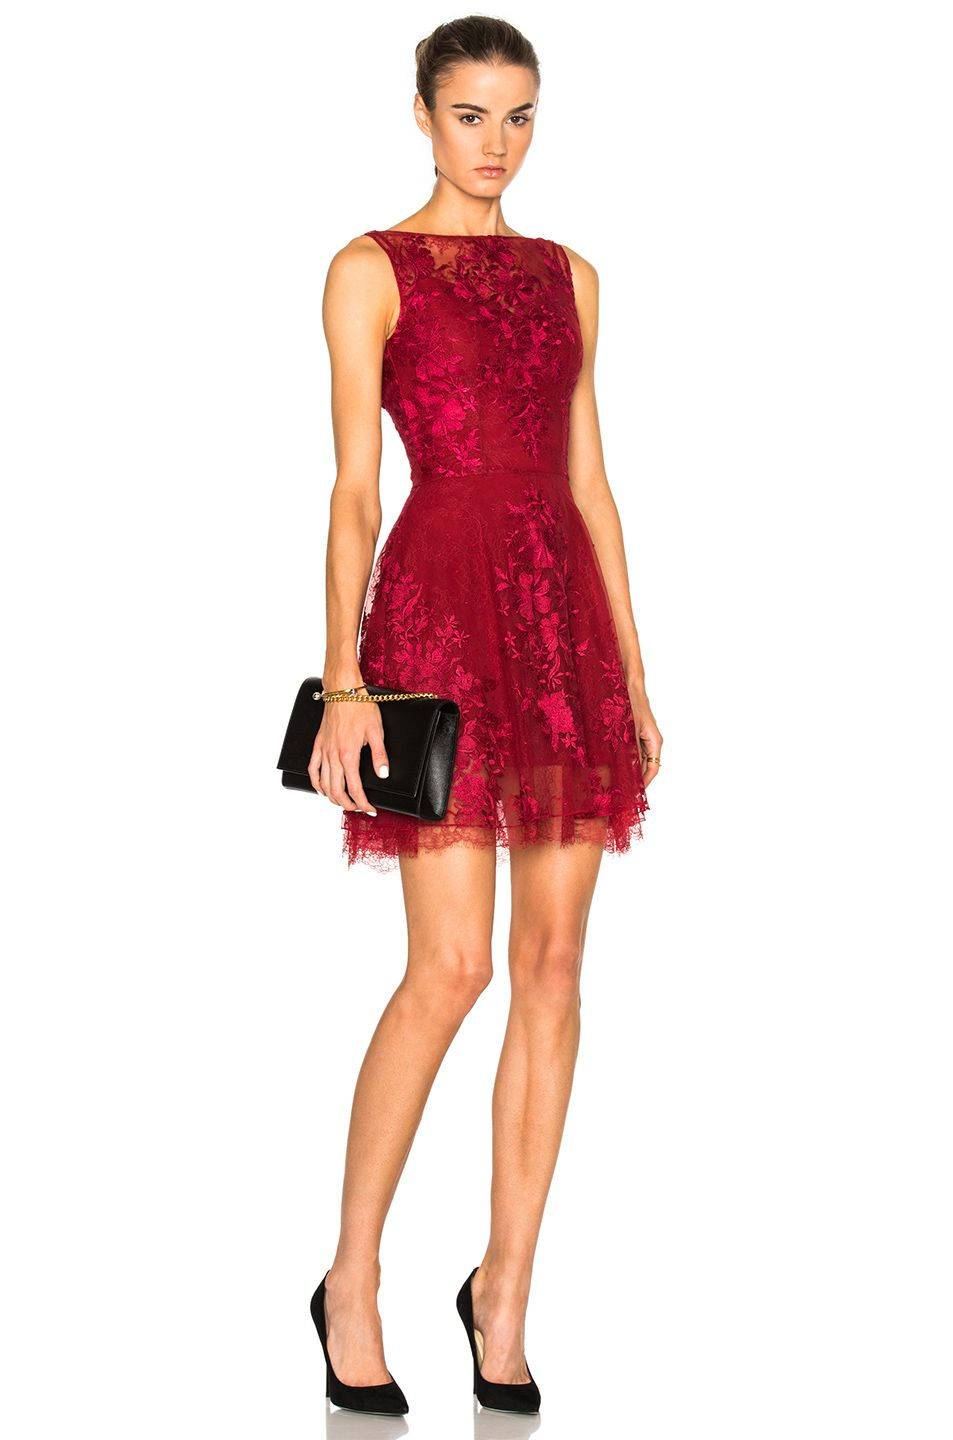 zuhair murad lace mini dress in red. in scarlet sage red